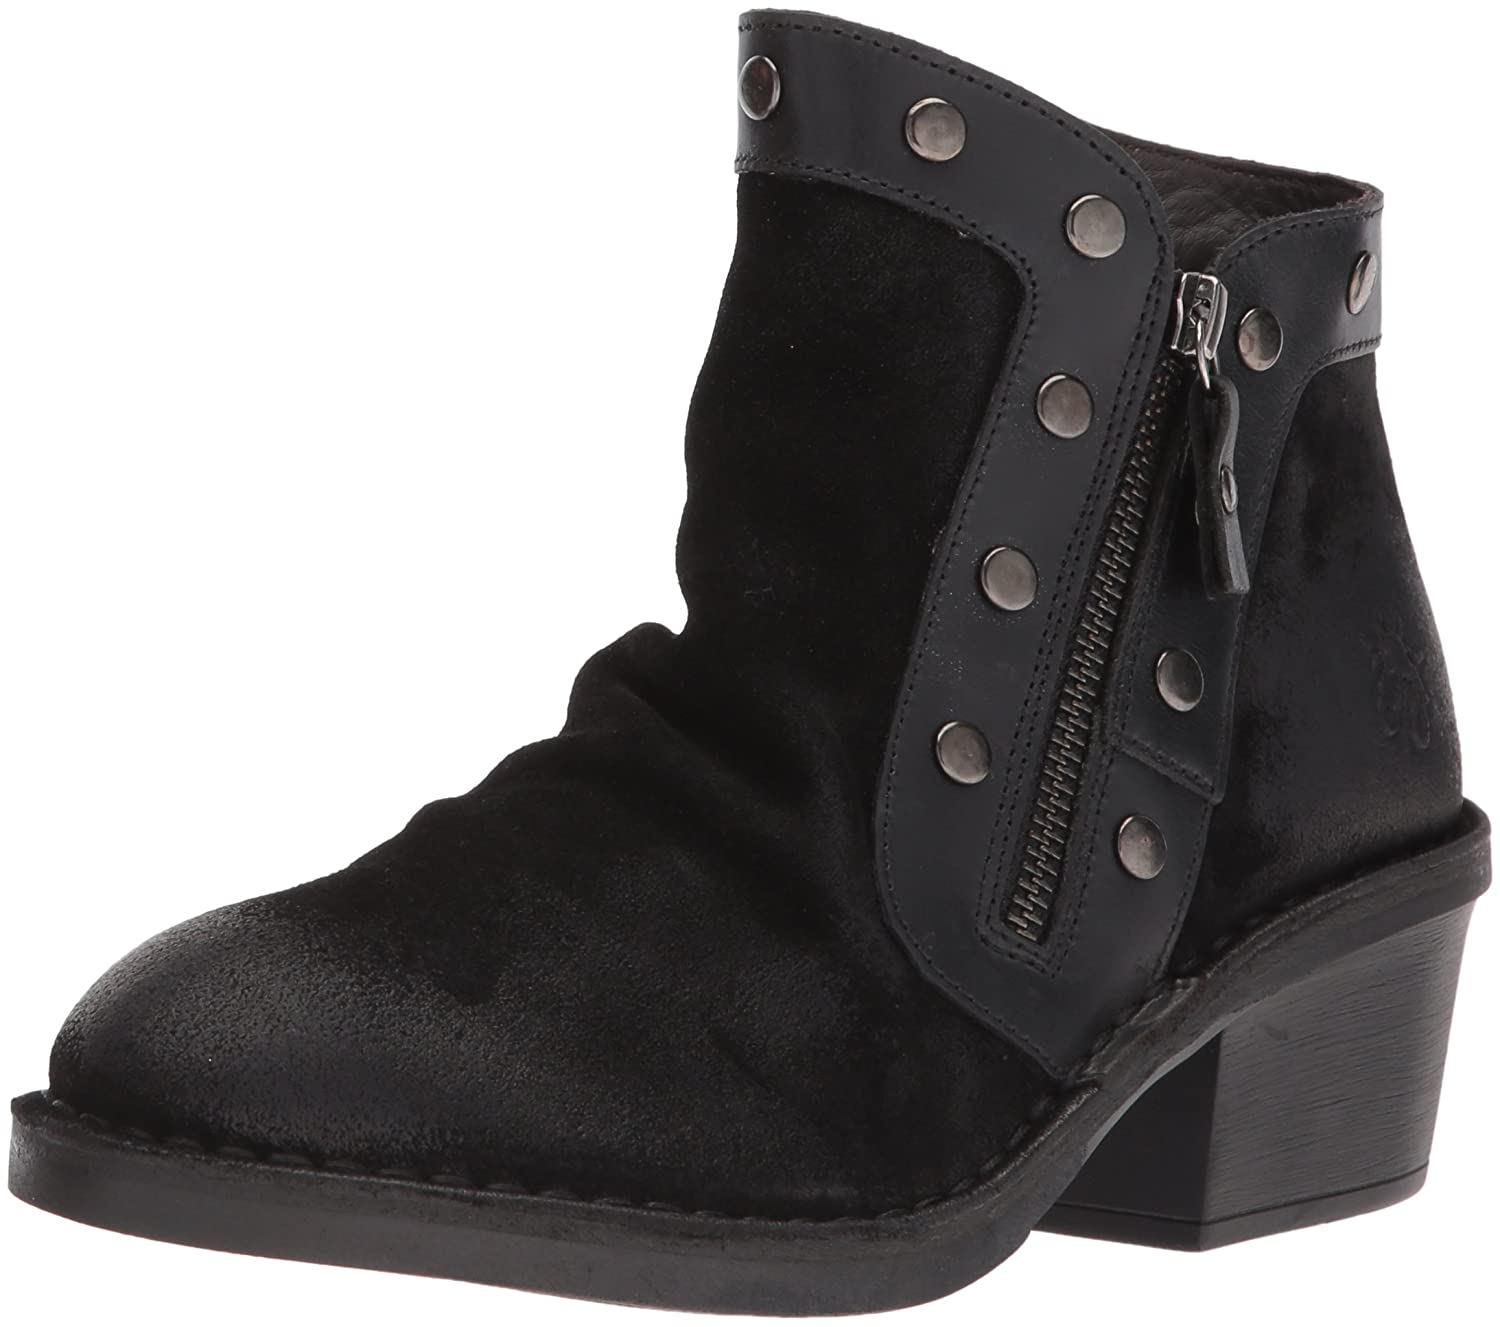 Wezo890flyBottes Classiques London London Fly Classiques Fly Wezo890flyBottes Classiques Fly Wezo890flyBottes London Fly London nPwN8O0Xk